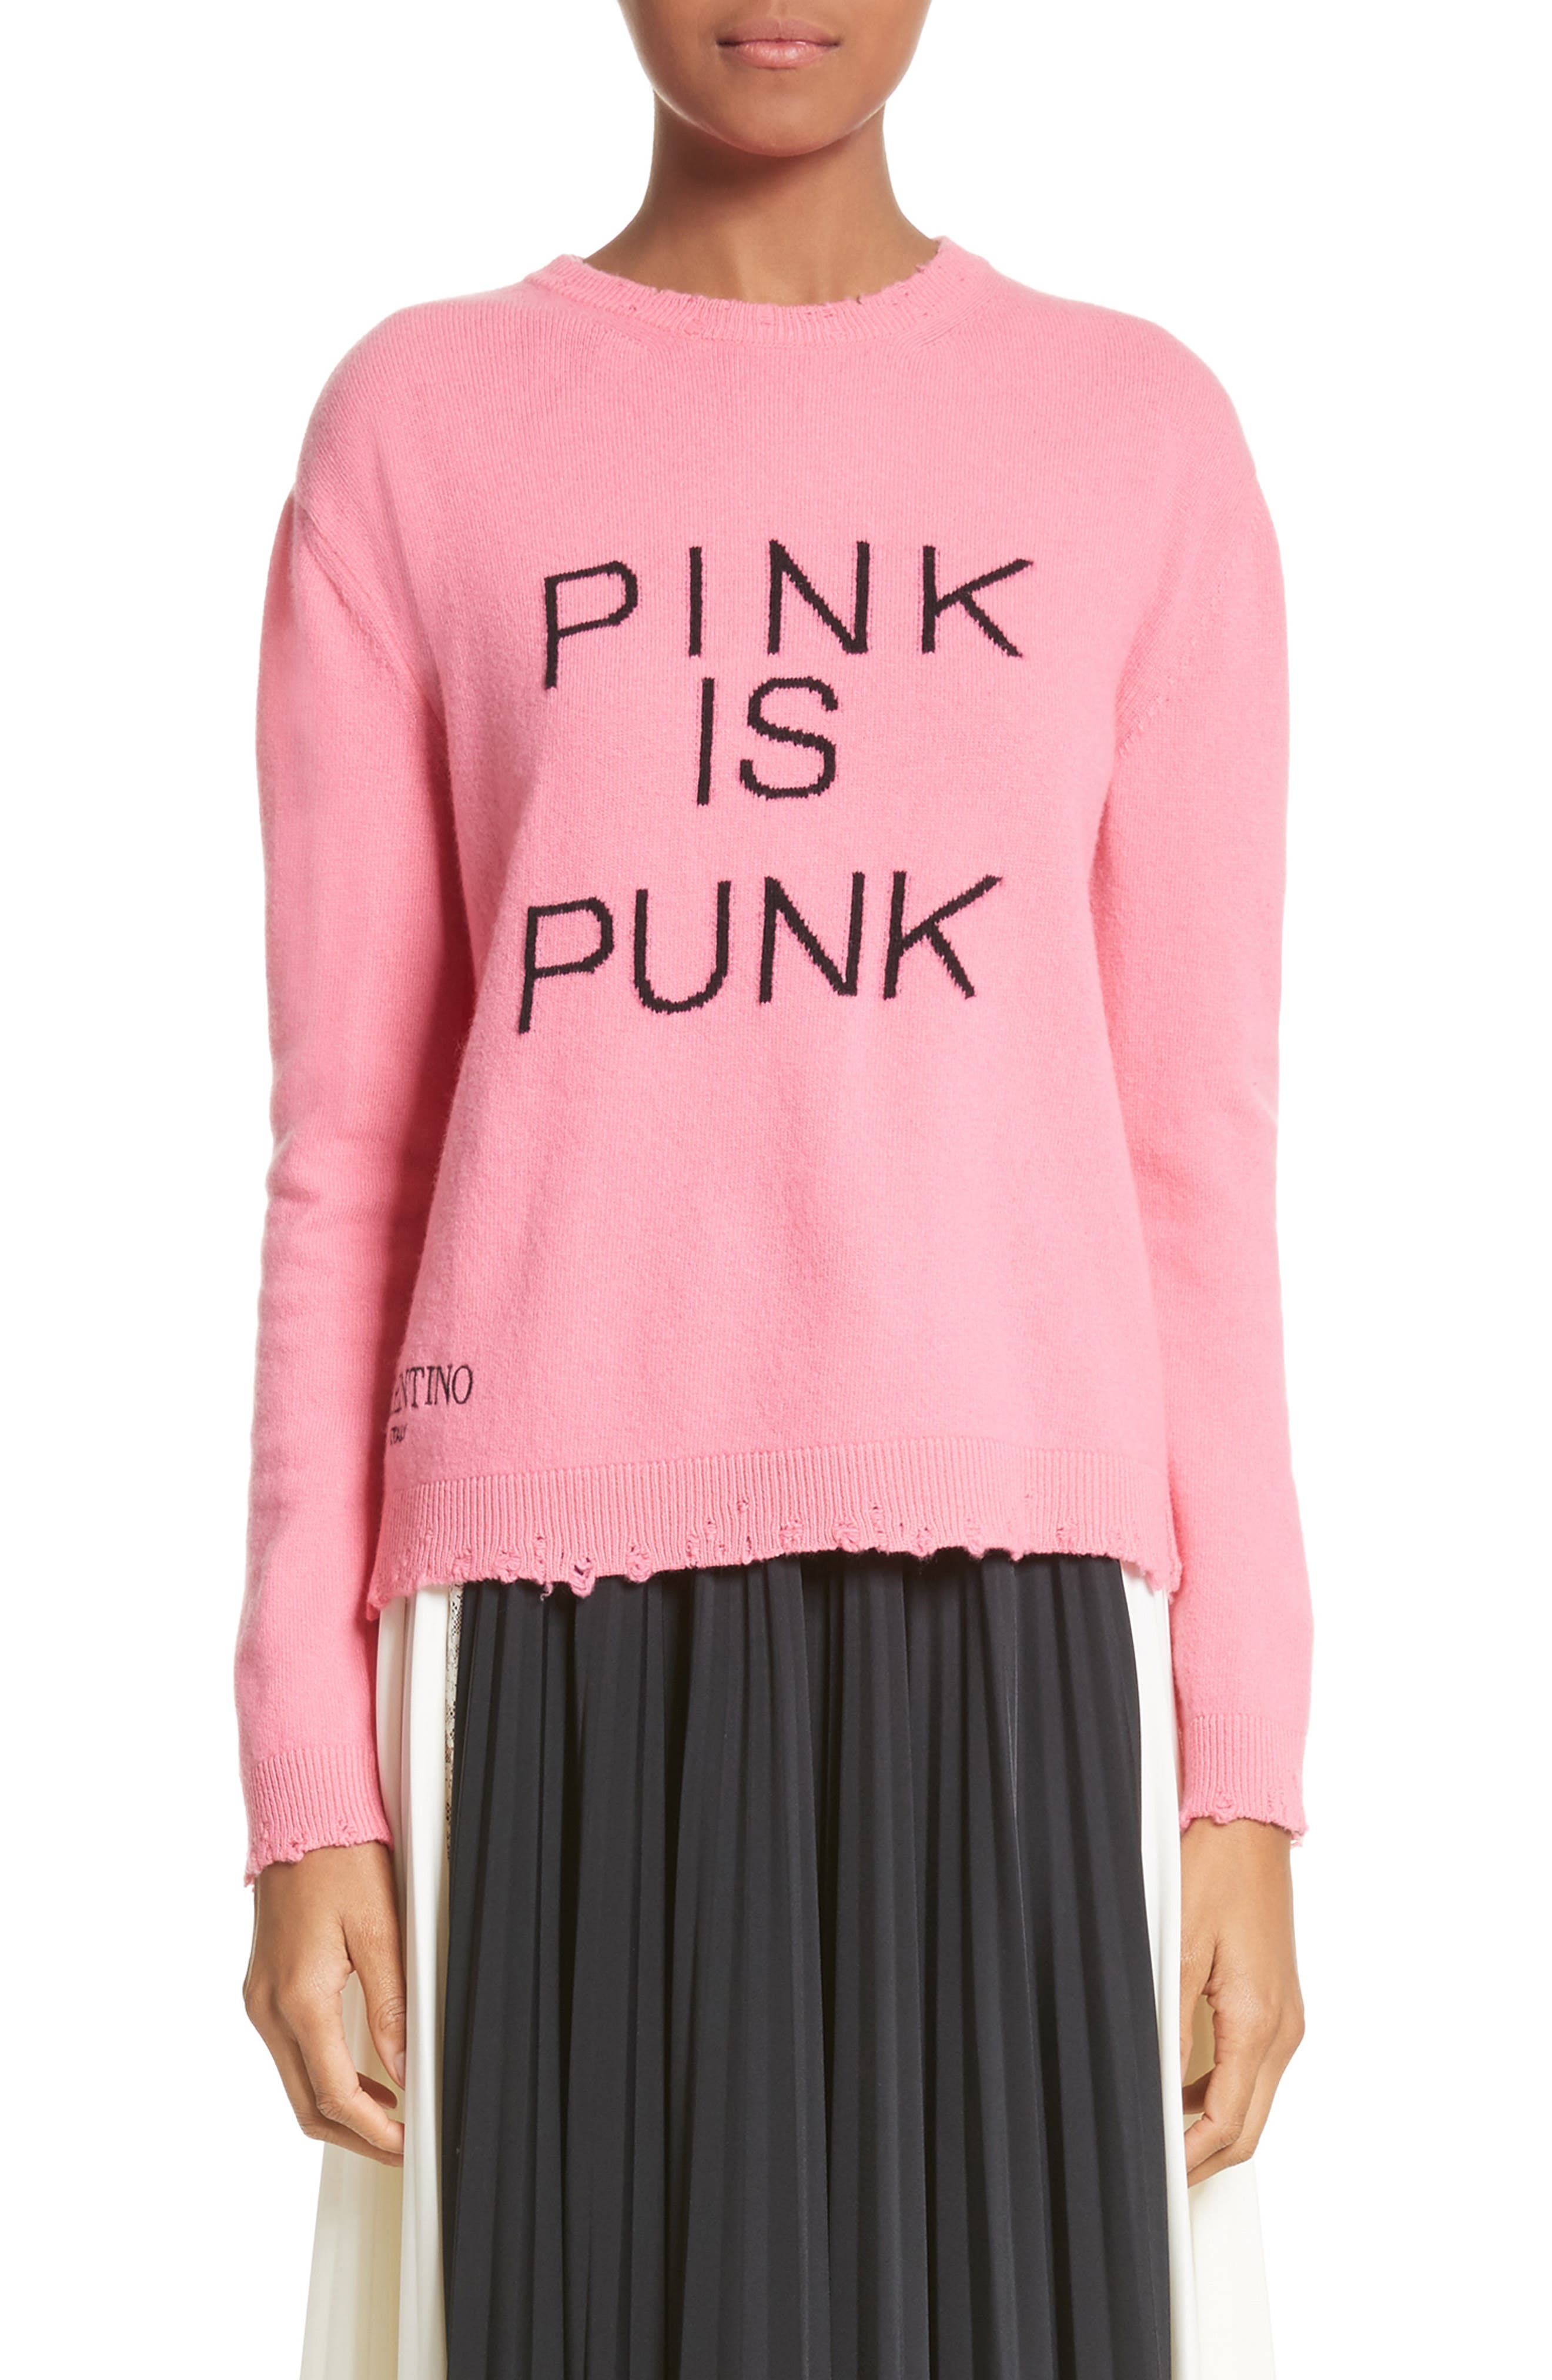 Alternate Image 1 Selected - Valentino Pink Is Punk Wool & Cashmere Sweater